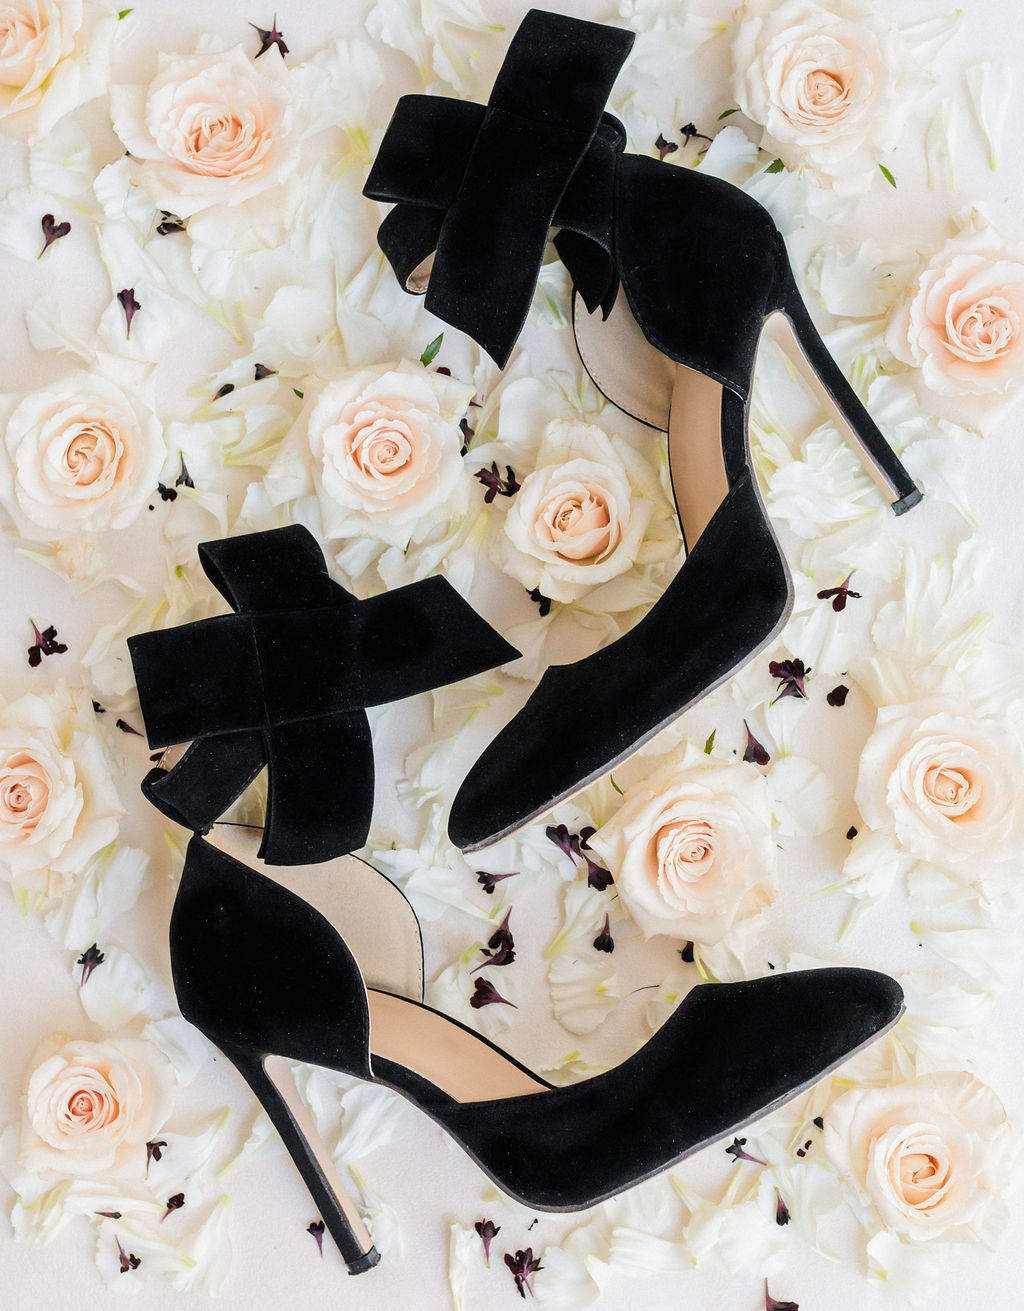 Black Wedding Heels Velvet Bows Elizabeth Burgi Photography